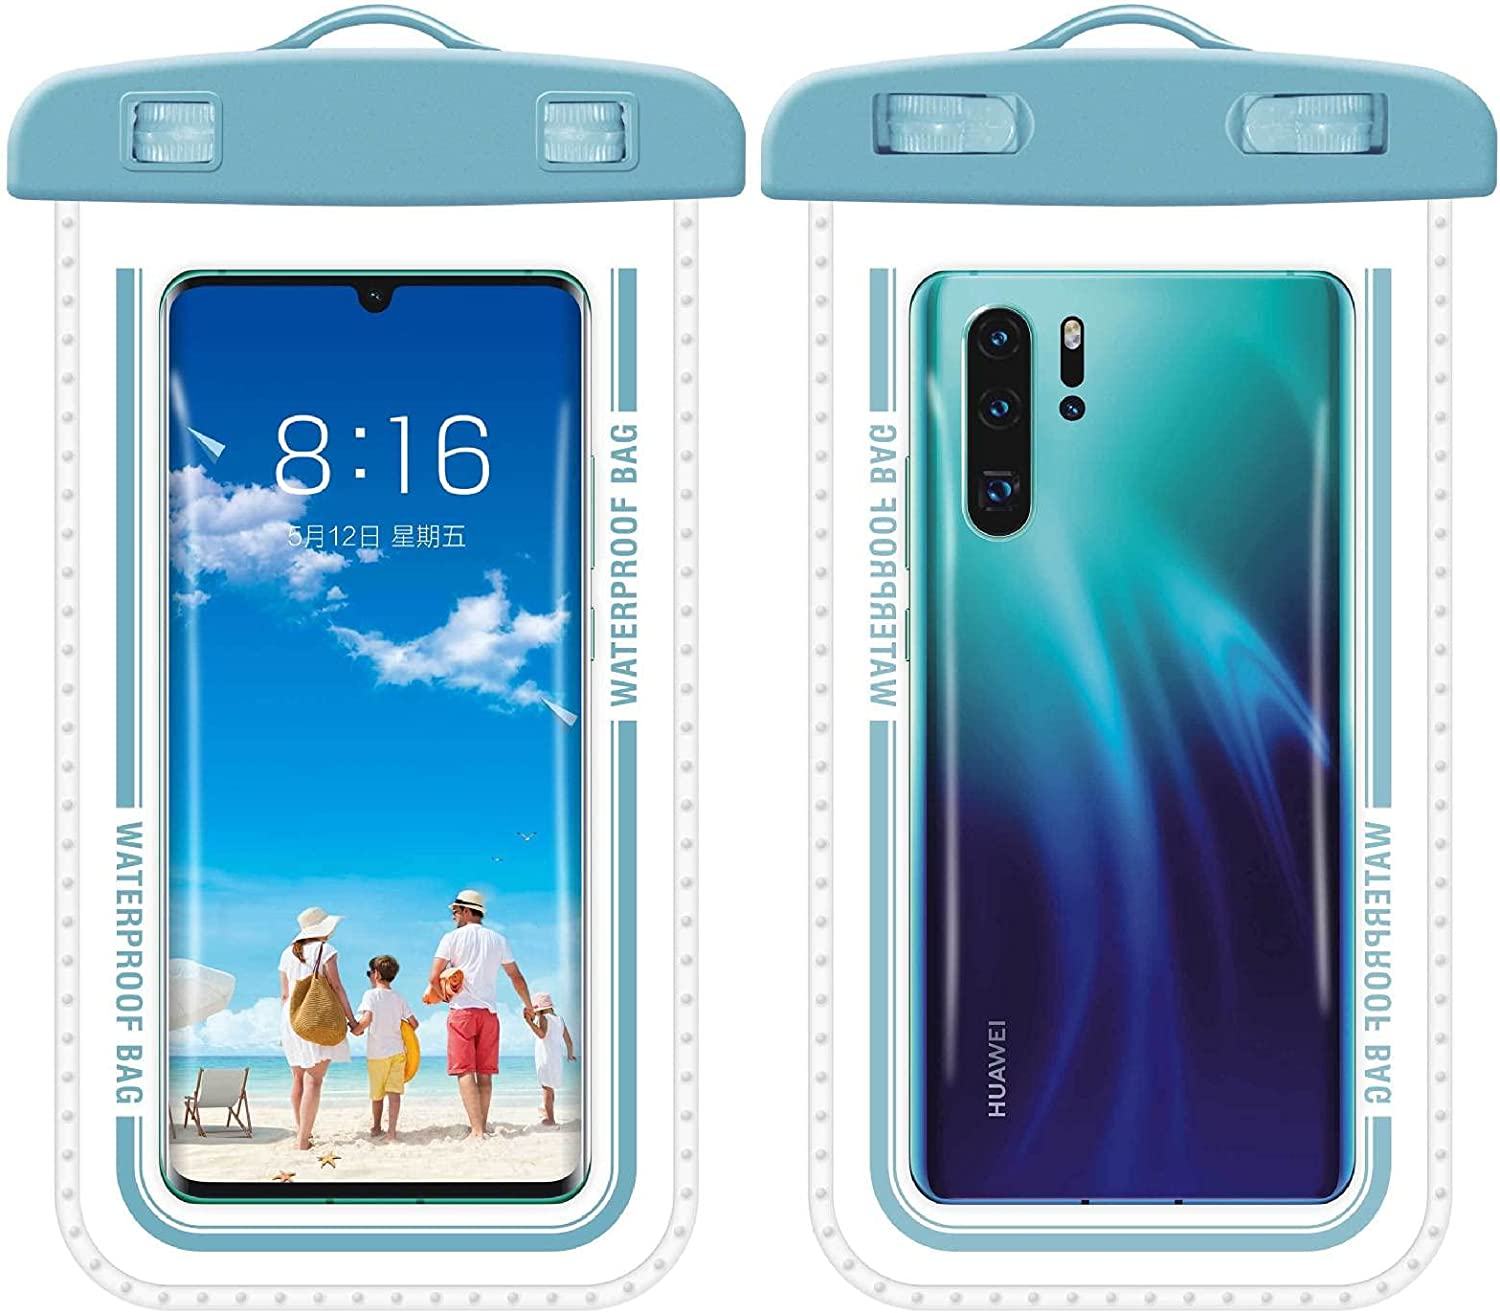 2Pieces Universal Waterproof Phone Pouch Underwater Clear Phone Case Cellphone Dry Bag Pouch with Lanyard Outdoor Beach Swimming Snorkeling for Smartphone up (gray blue)